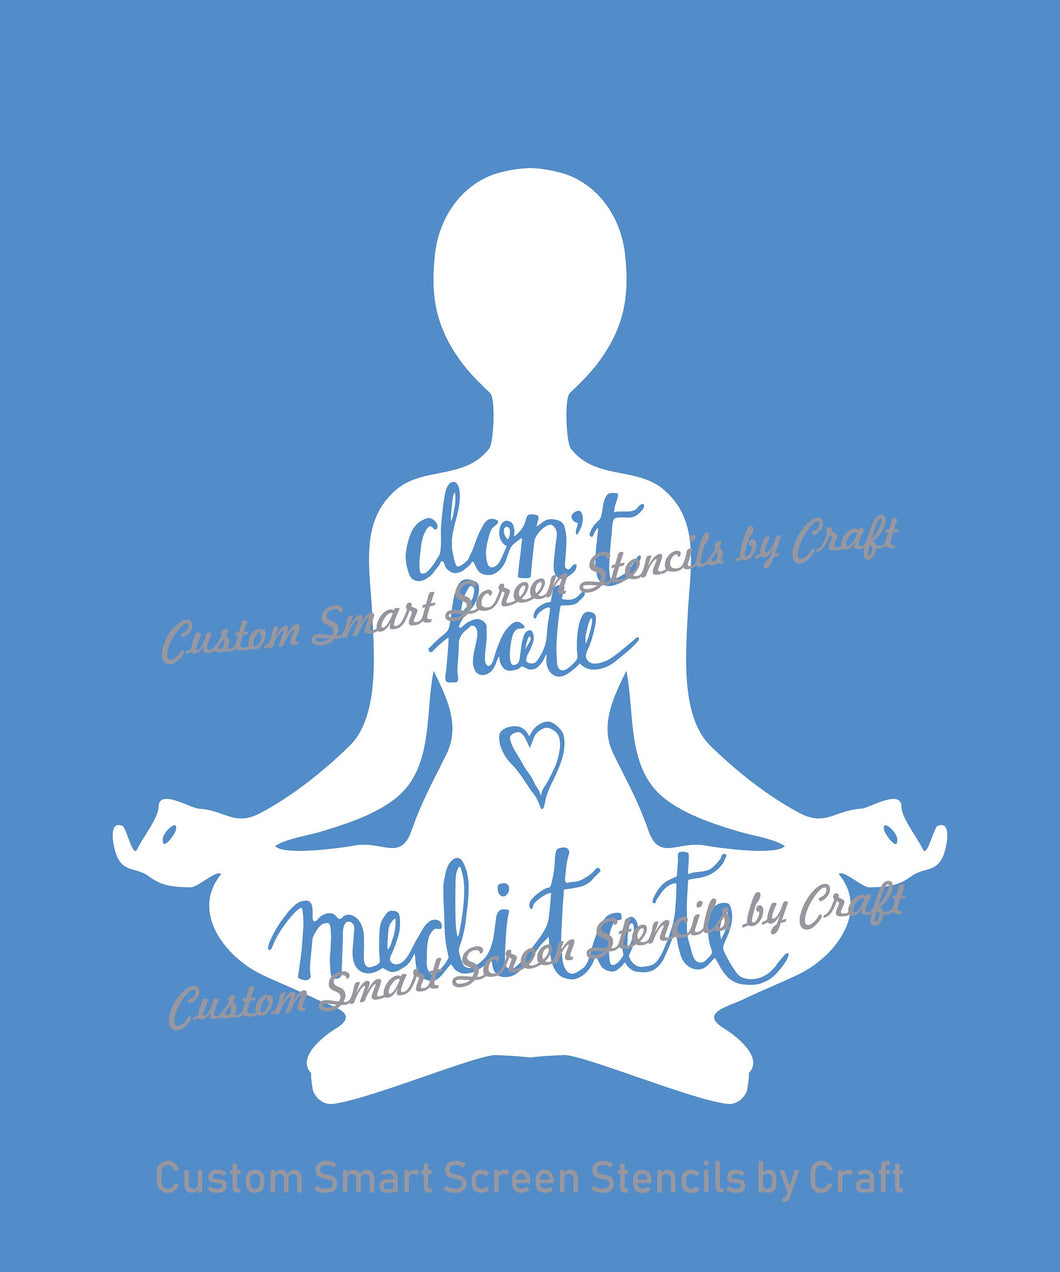 Meditation Quote SilkScreen Stencil - Reusable, Self Adhesive - Canvas, Cards, Glass, Ceramic, Tile, Walls, Fabric, Wood, Clay, Metal, etc